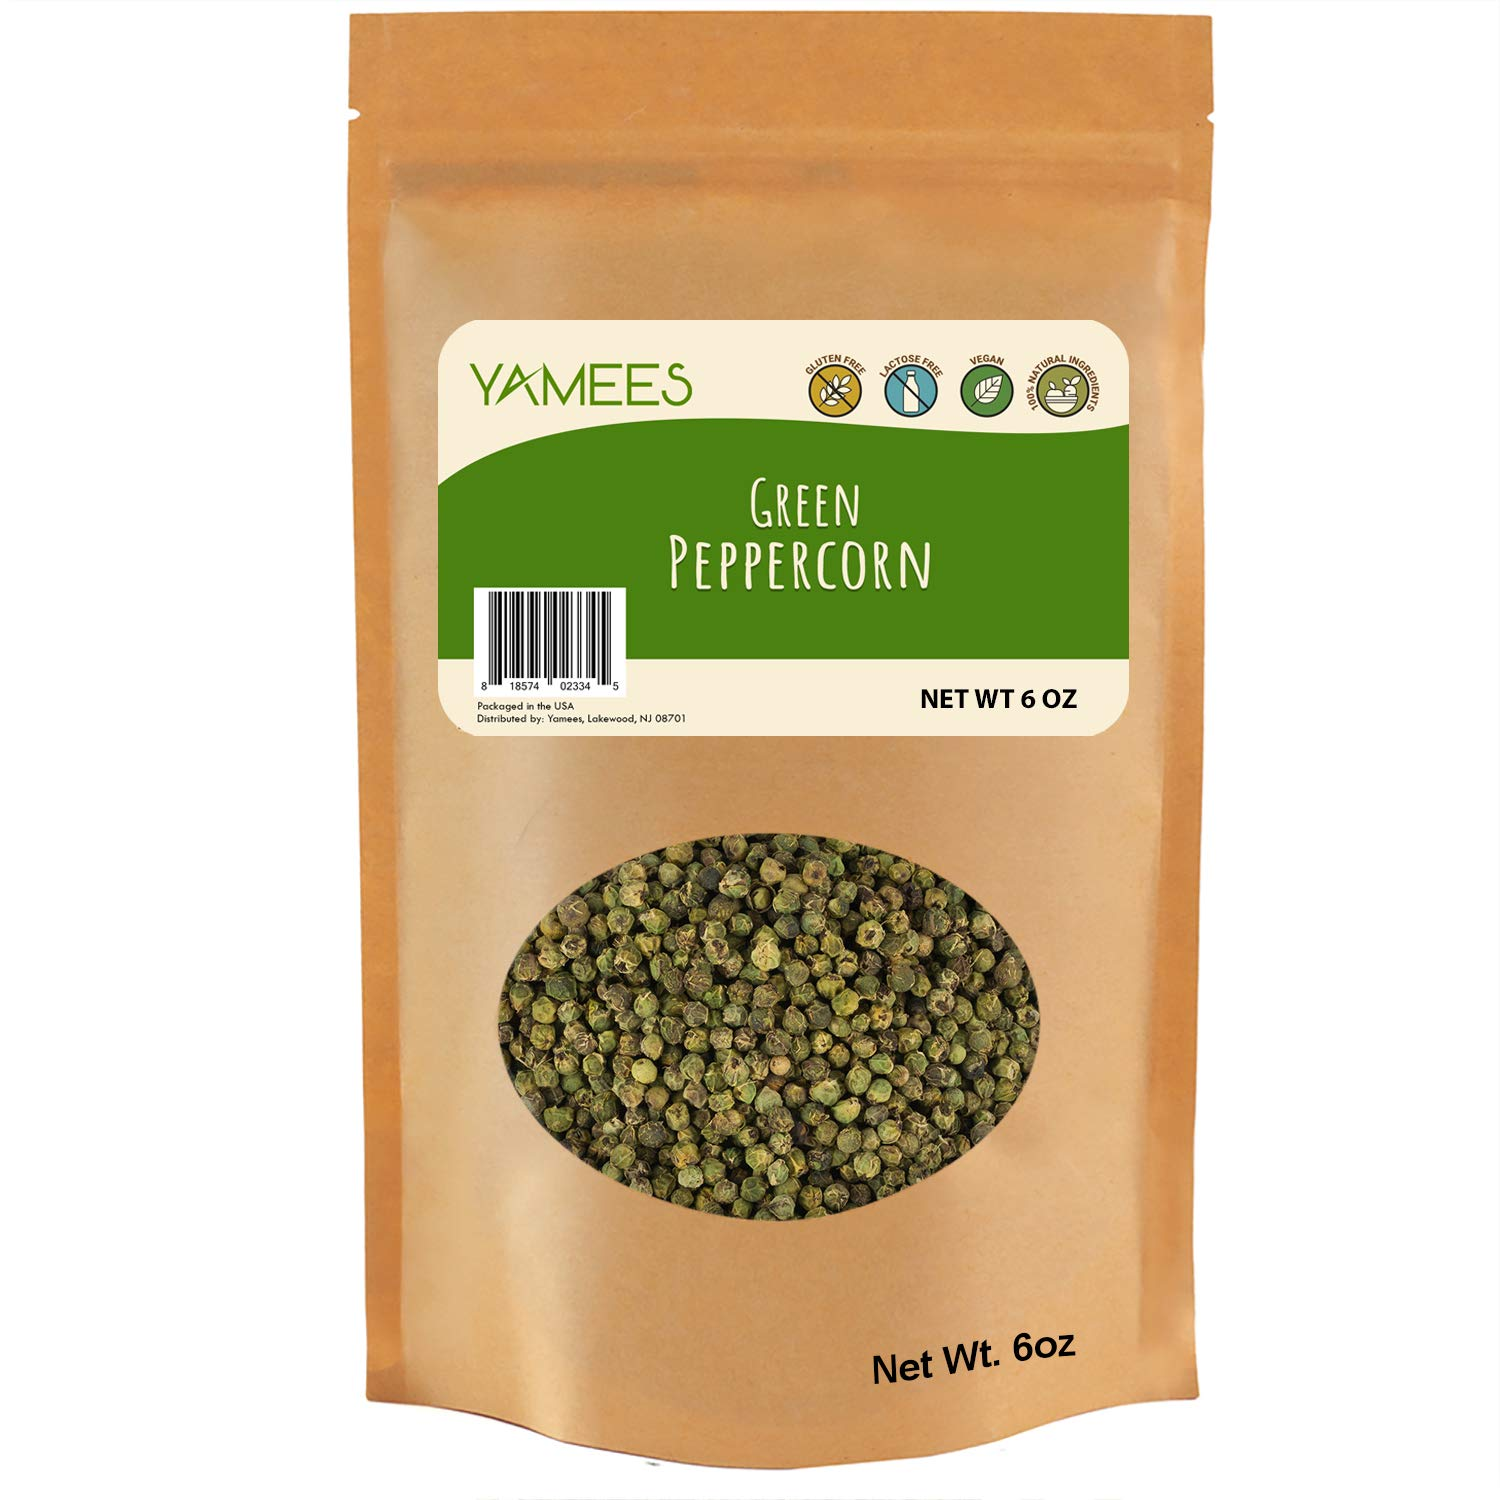 Yamees Peppercorns - Sancho Peppercorns - Green Peppercorns - Japanese Peppercorn - Bulk Spices - 6 Ounce Bag by YAMEES